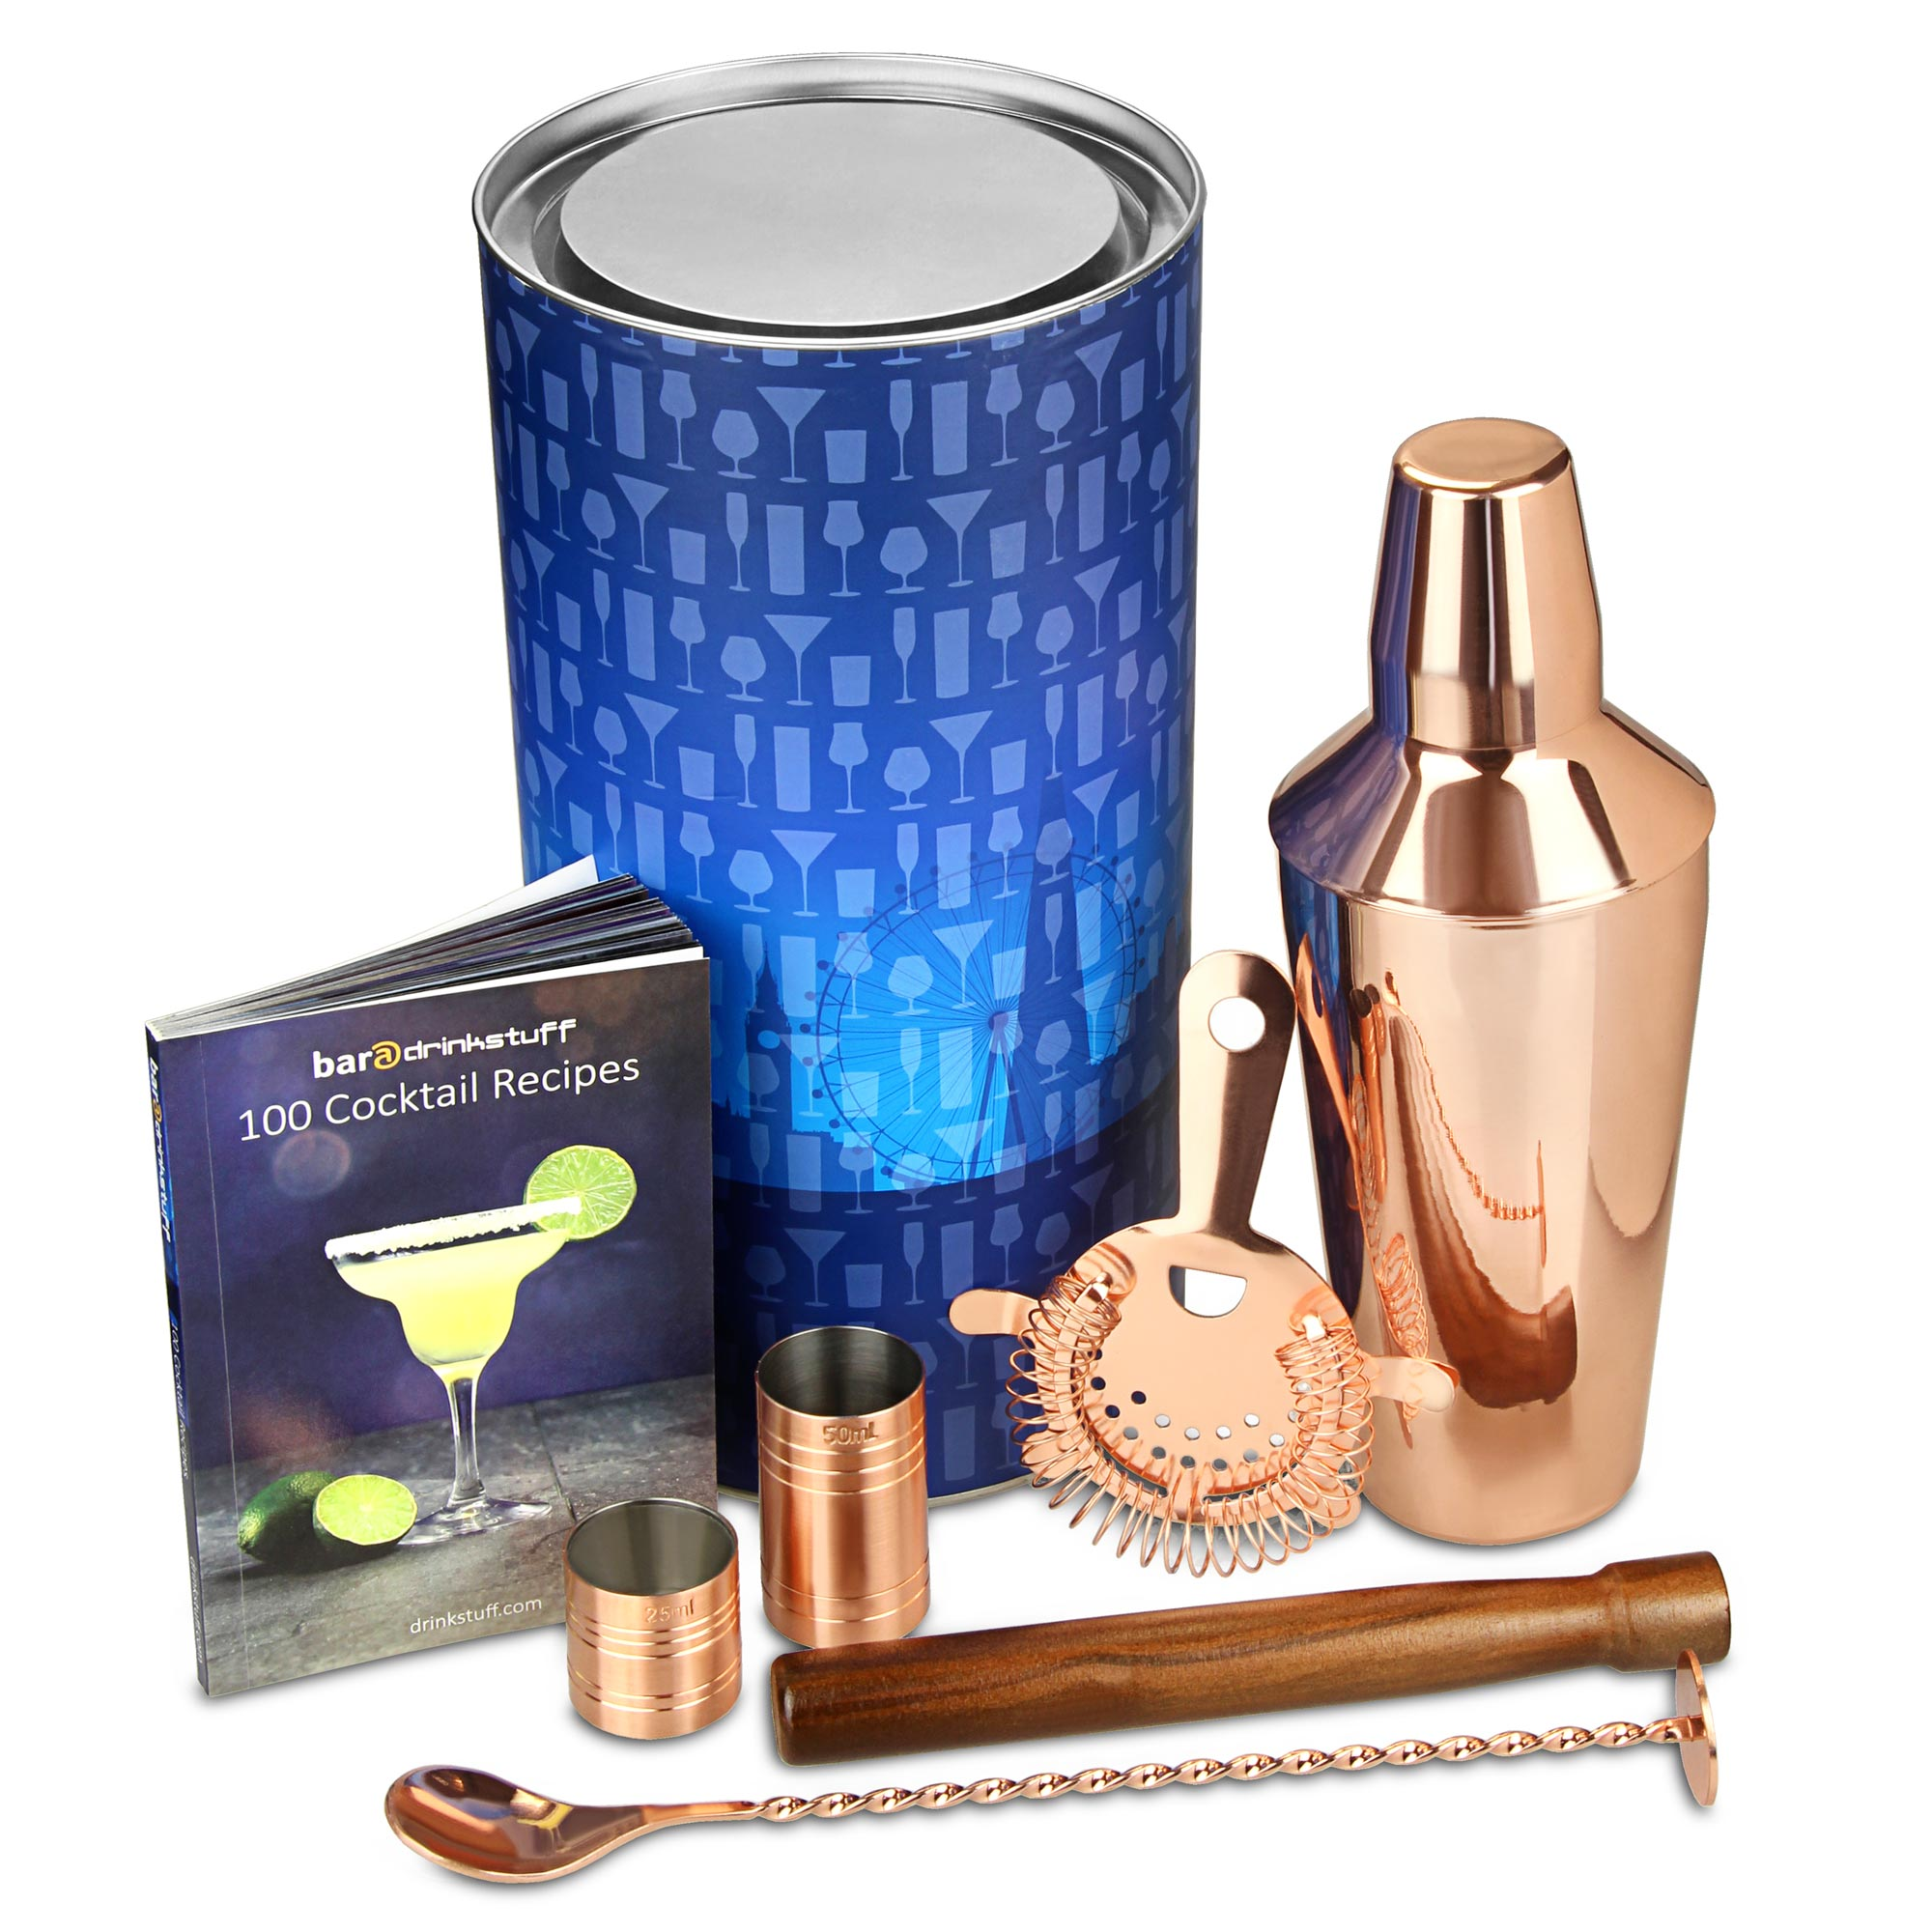 copper manhattan cocktail shaker set at drinkstuff. Black Bedroom Furniture Sets. Home Design Ideas